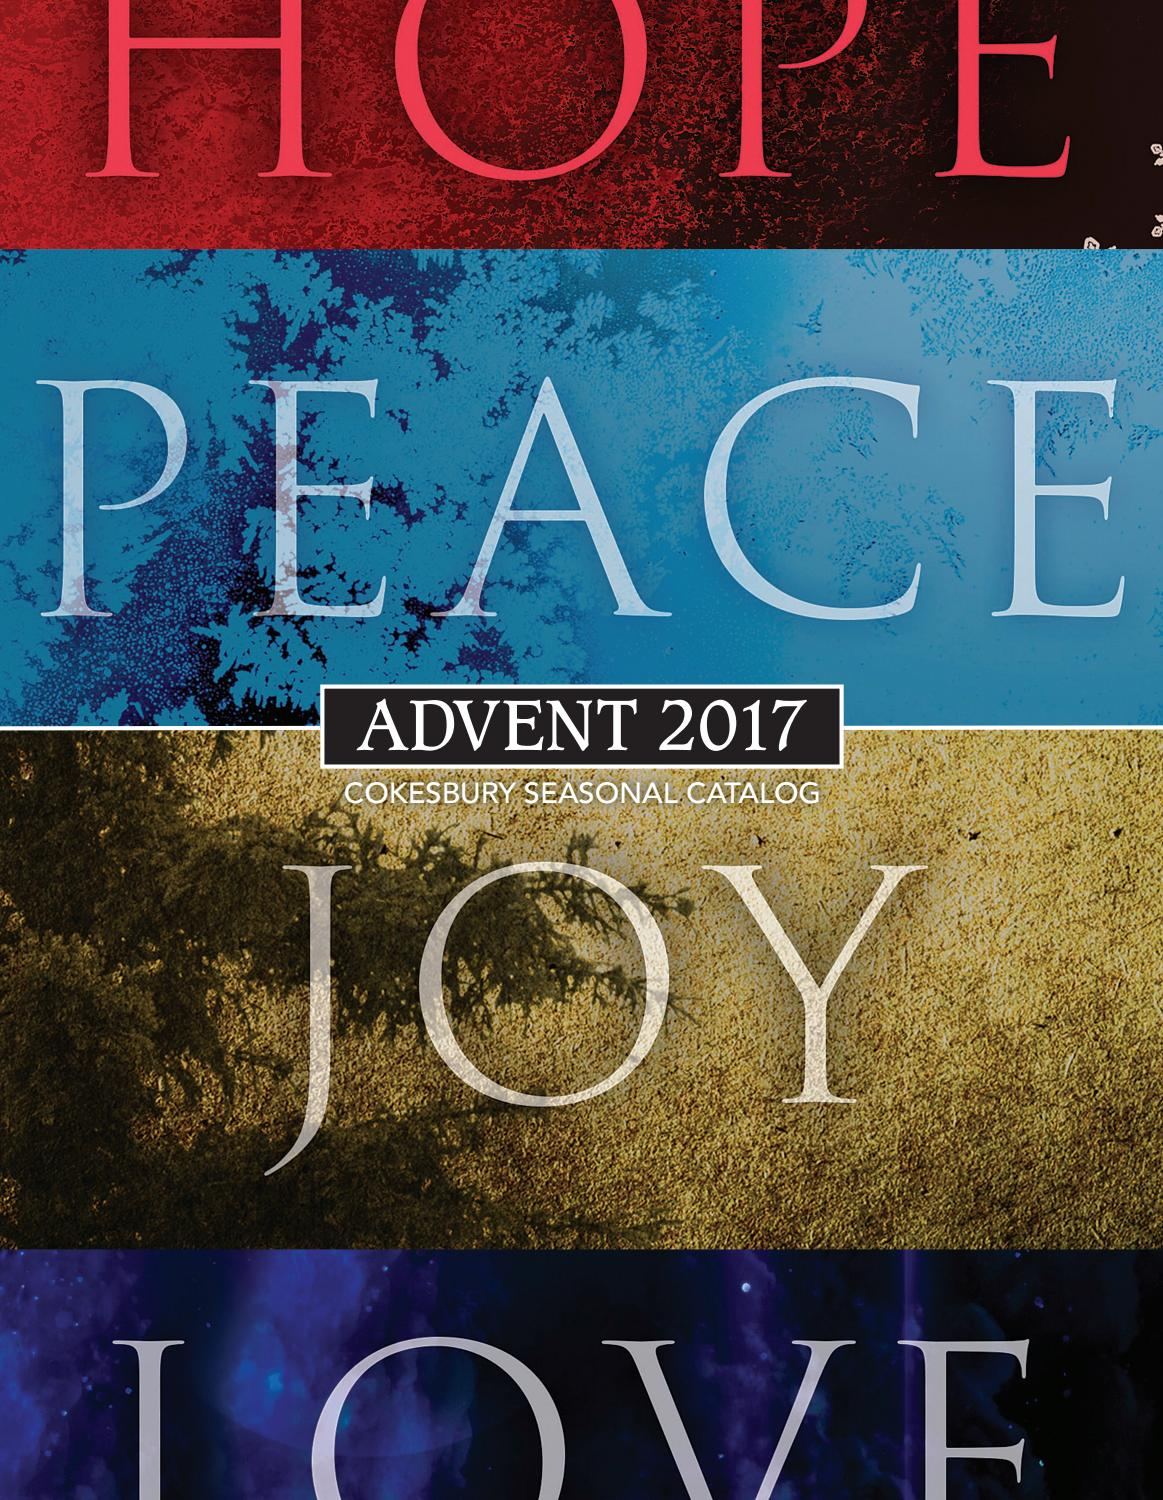 Cokesbury Seasonal Advent 2017 Catalog By United Methodist Thread Realistic Electric Flickering Pillar Candles Publishing House Issuu